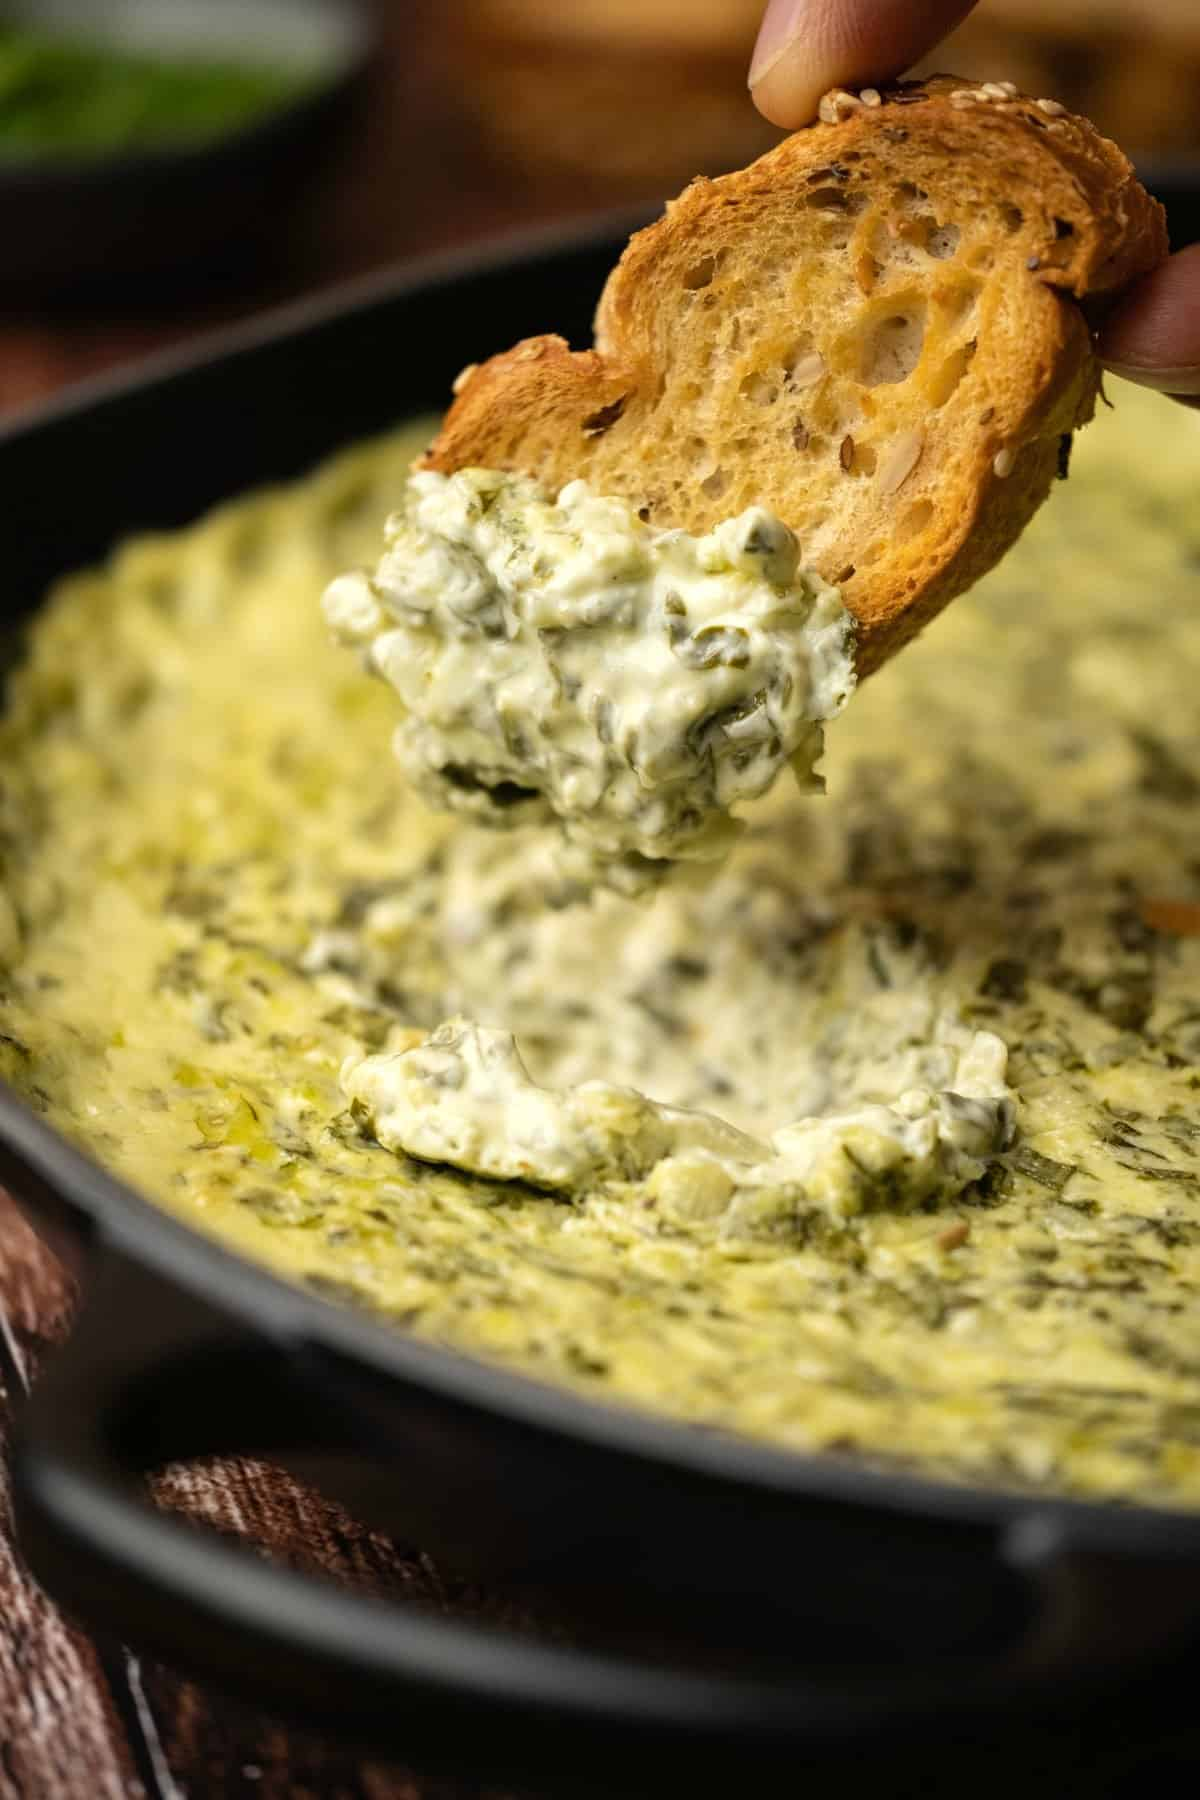 Toasted baguette dipping into baked spinach dip.